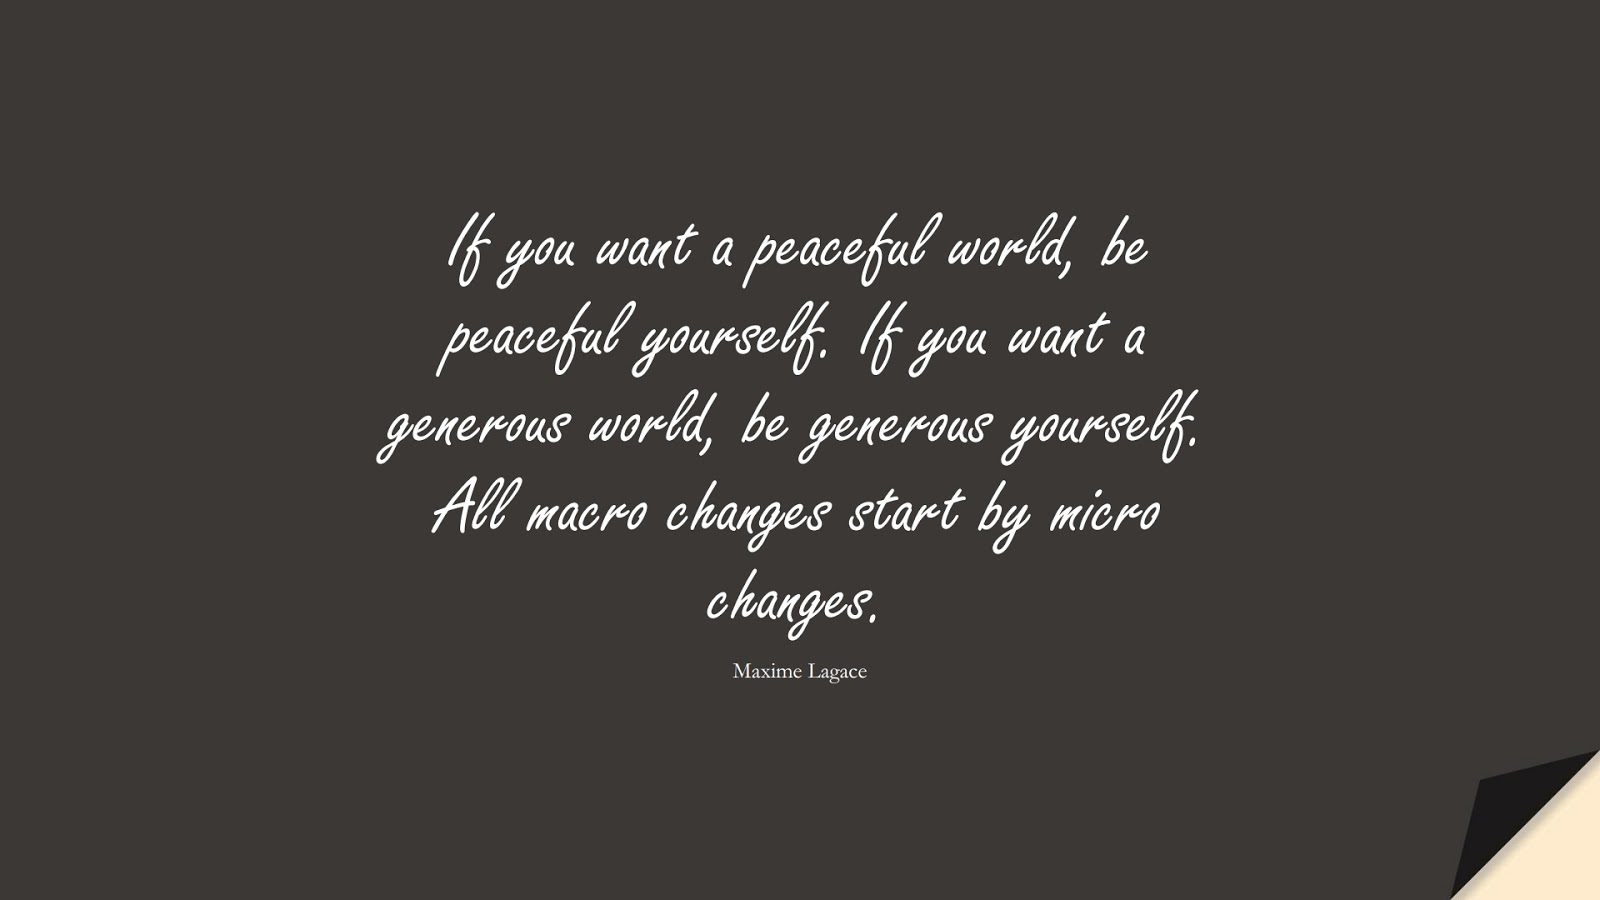 If you want a peaceful world, be peaceful yourself. If you want a generous world, be generous yourself. All macro changes start by micro changes. (Maxime Lagace);  #ChangeQuotes